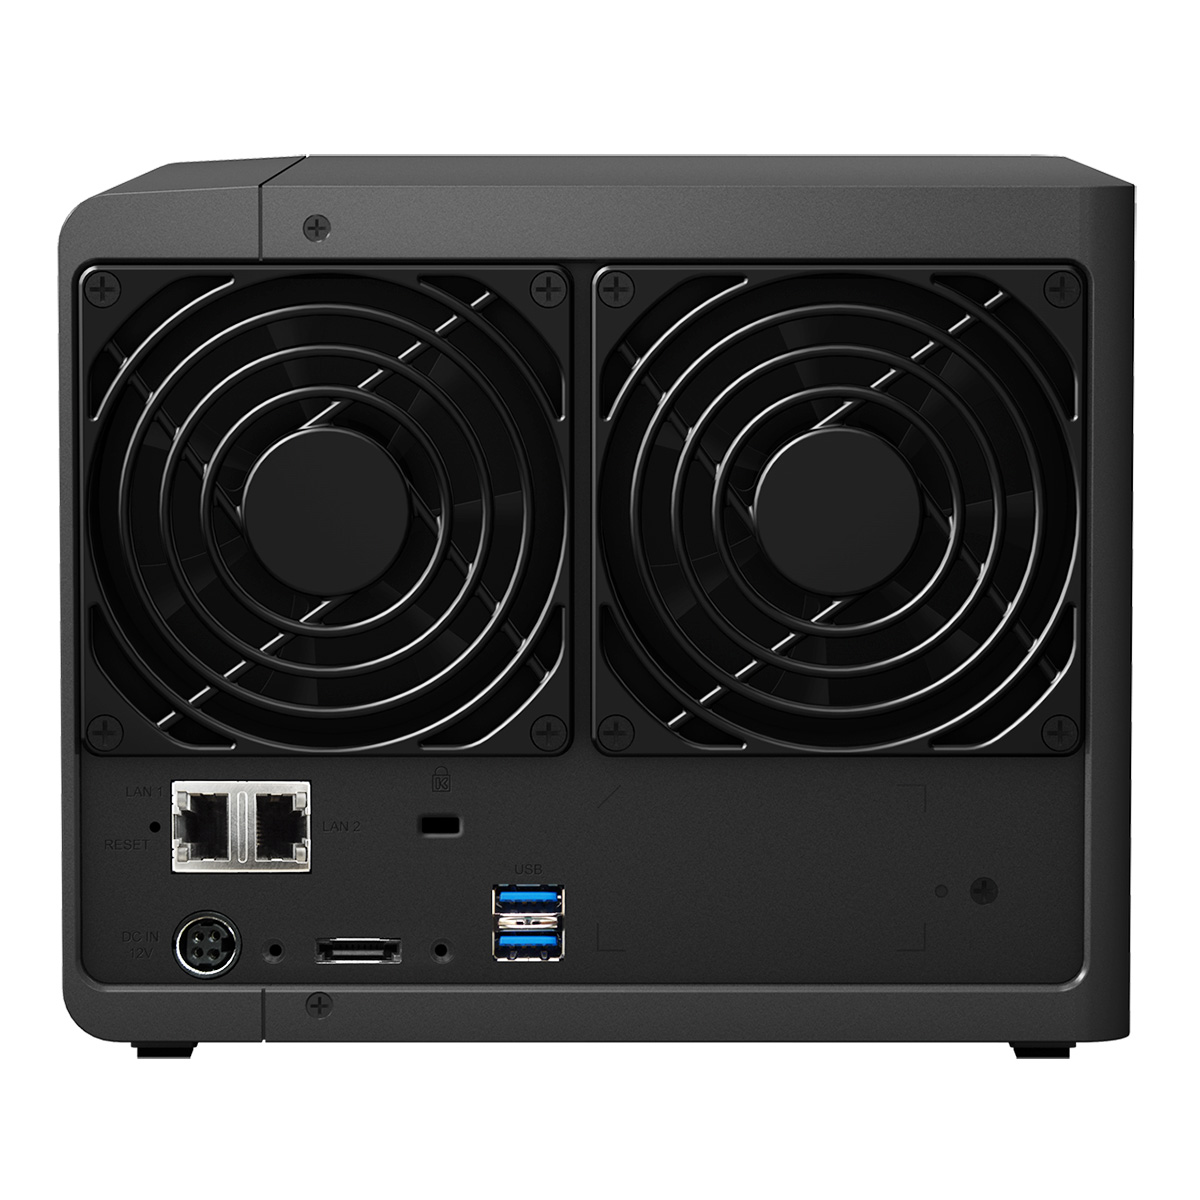 Synology DiskStation DS916+ 8G